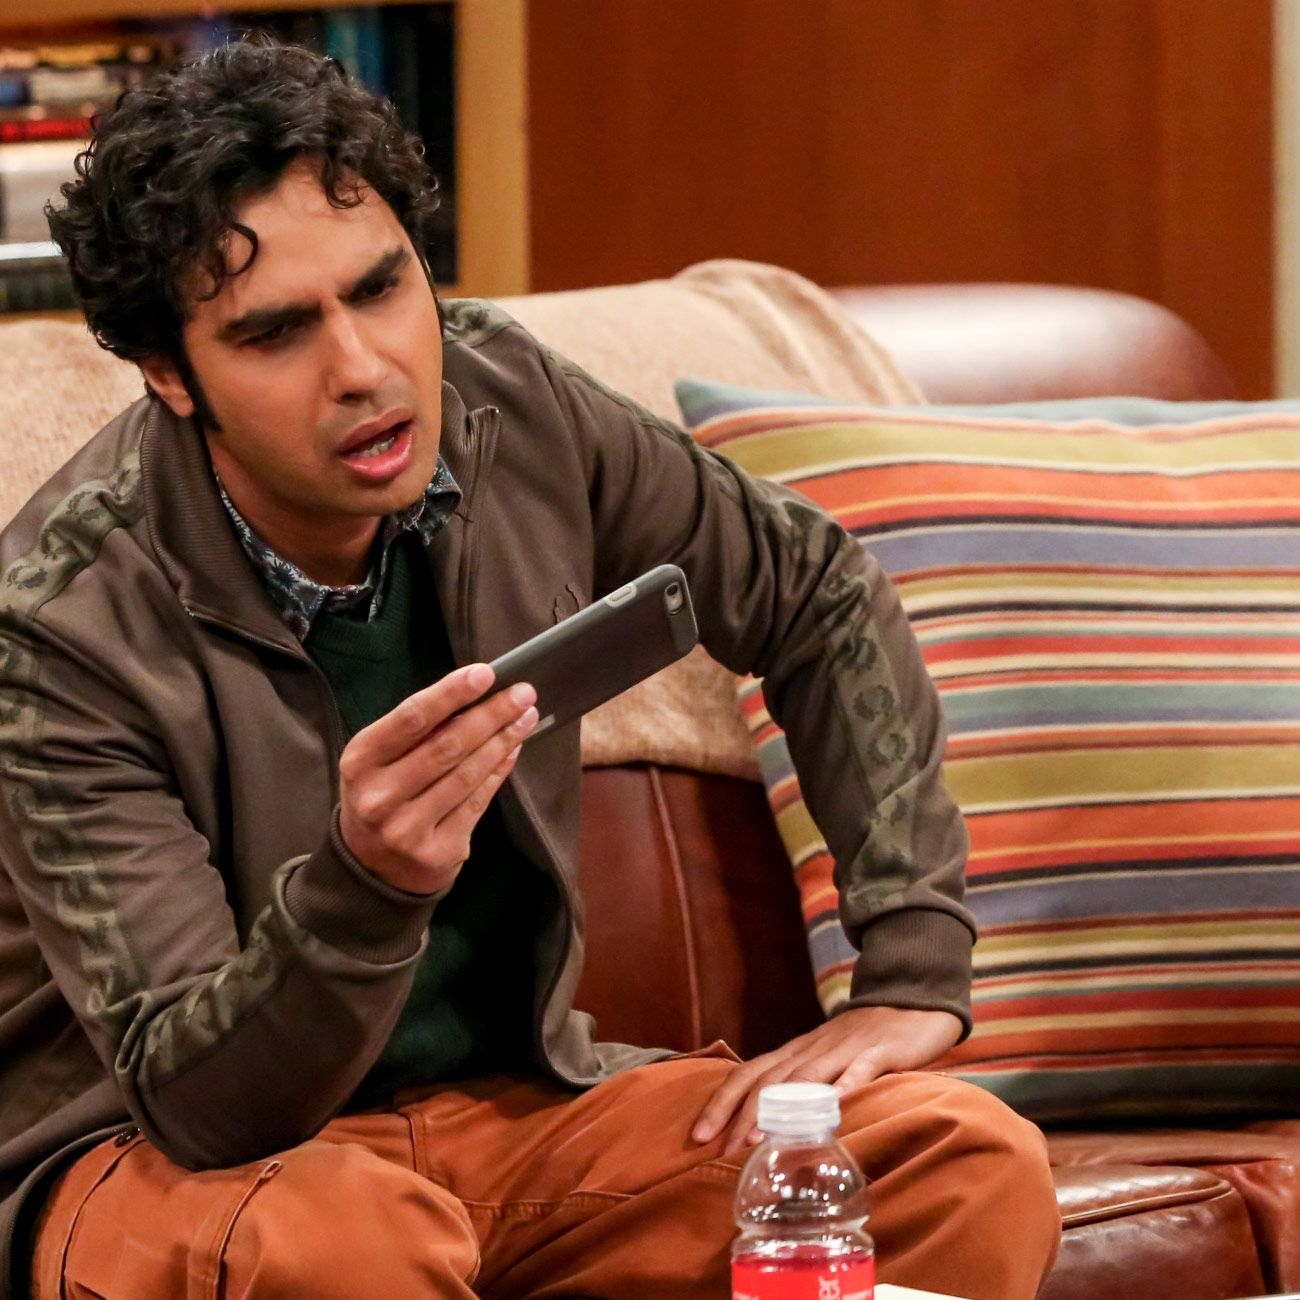 Big Bang Theory star says he'll miss his character as series draws to an end